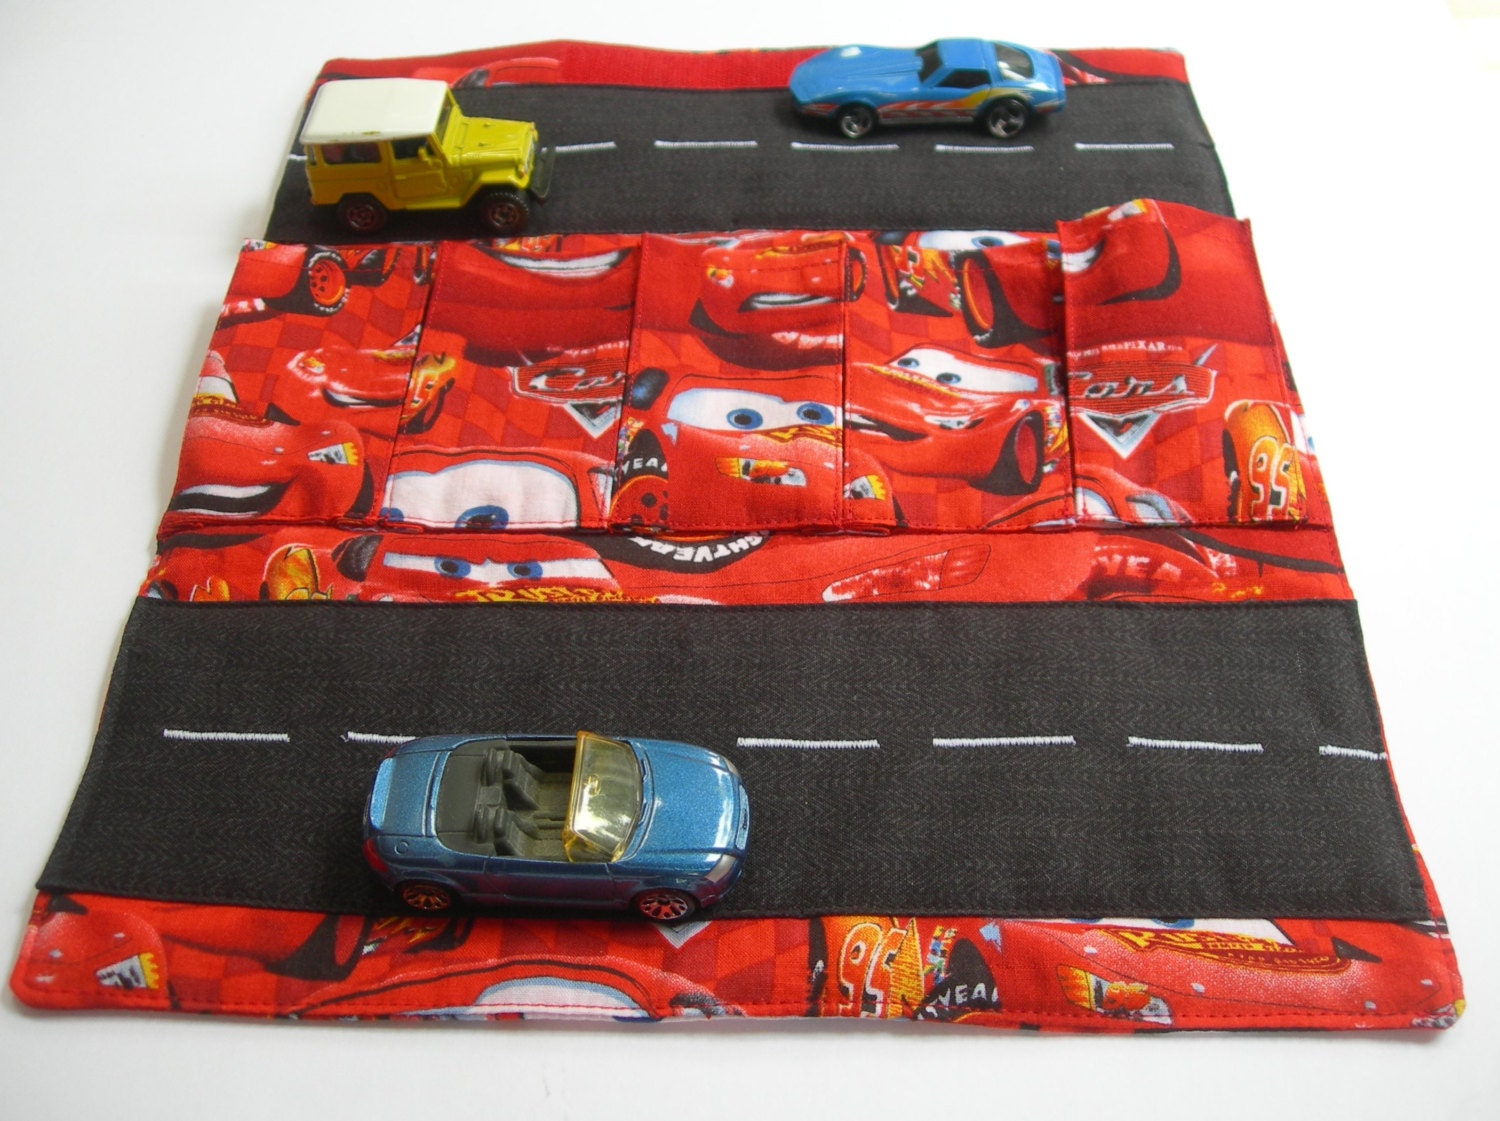 Toy Car Rack : Toy car carrier with road wallet